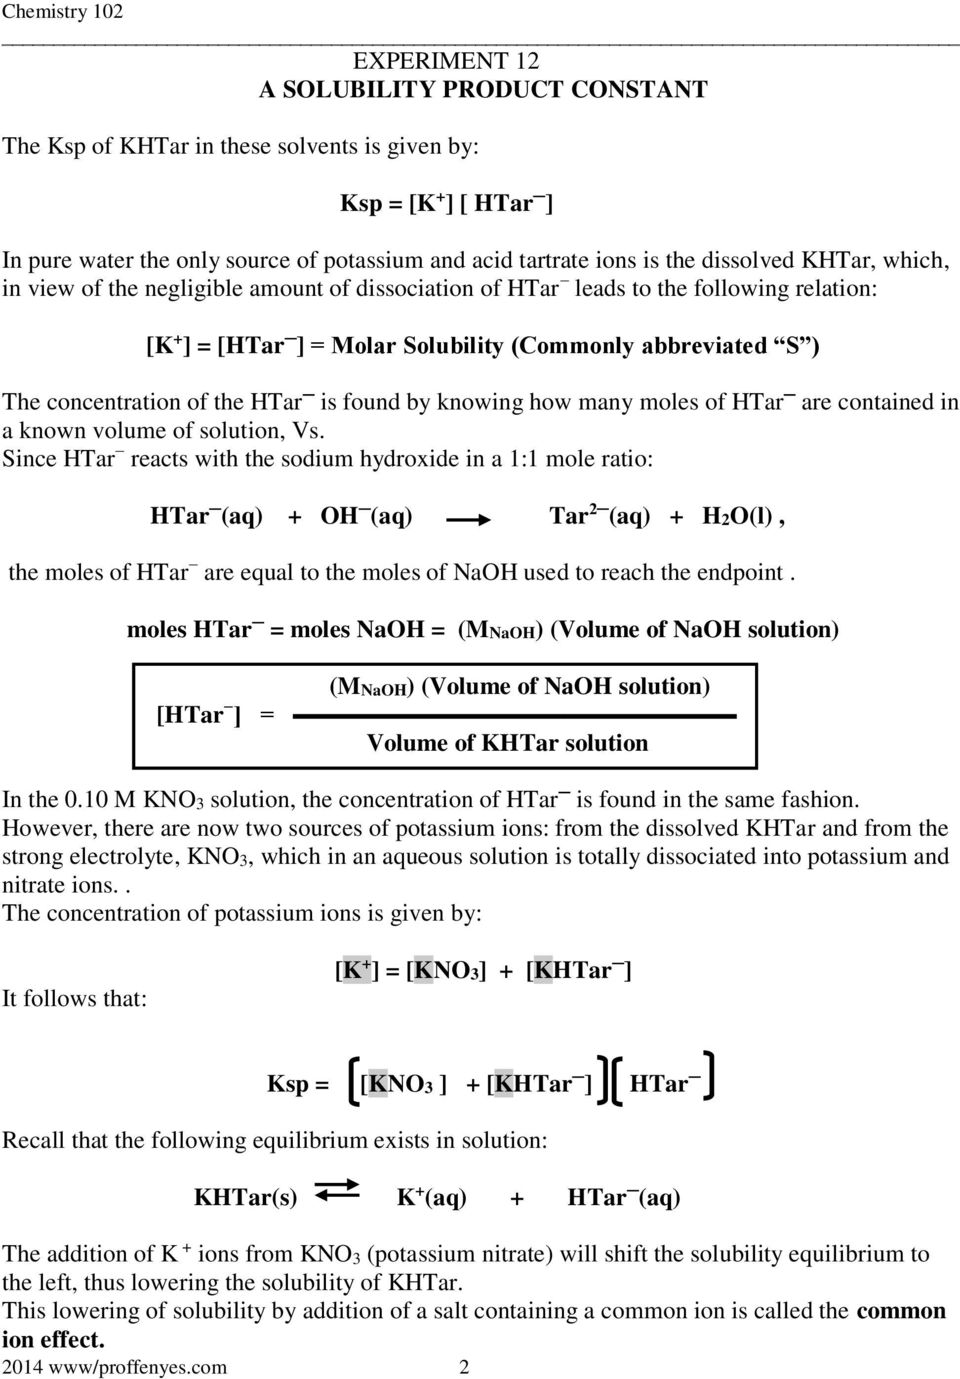 EXPERIMENT 12 A SOLUBILITY PRODUCT CONSTANT - PDF